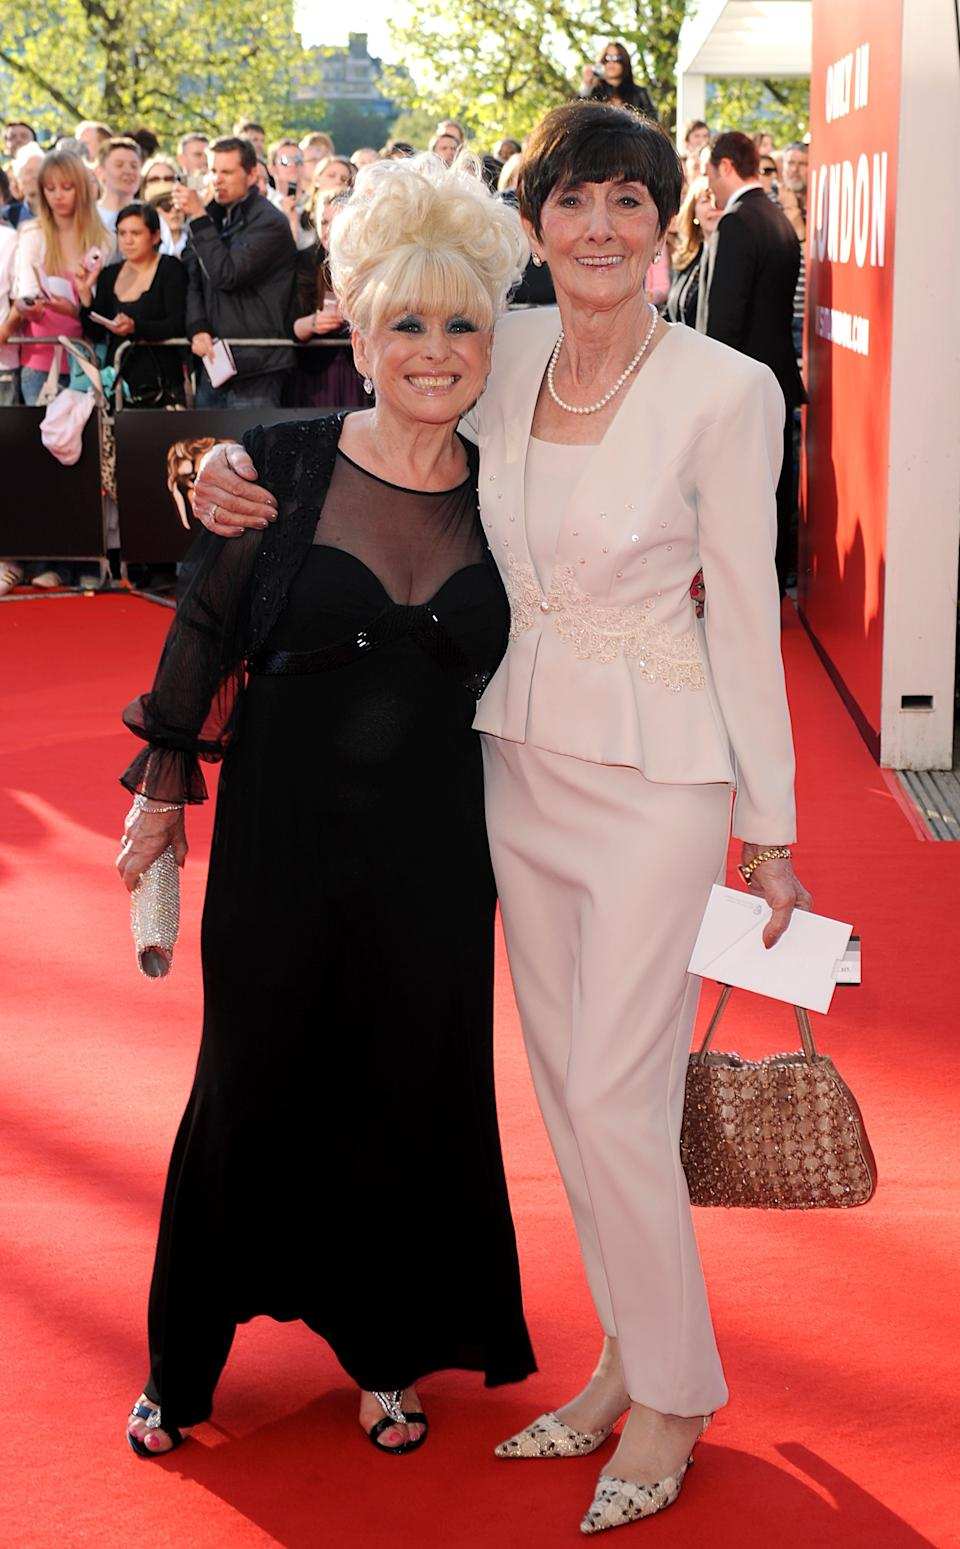 Barbara Windsor and June Brown arriving for the British Academy Television Awards at the Royal Festival Hall in central London.